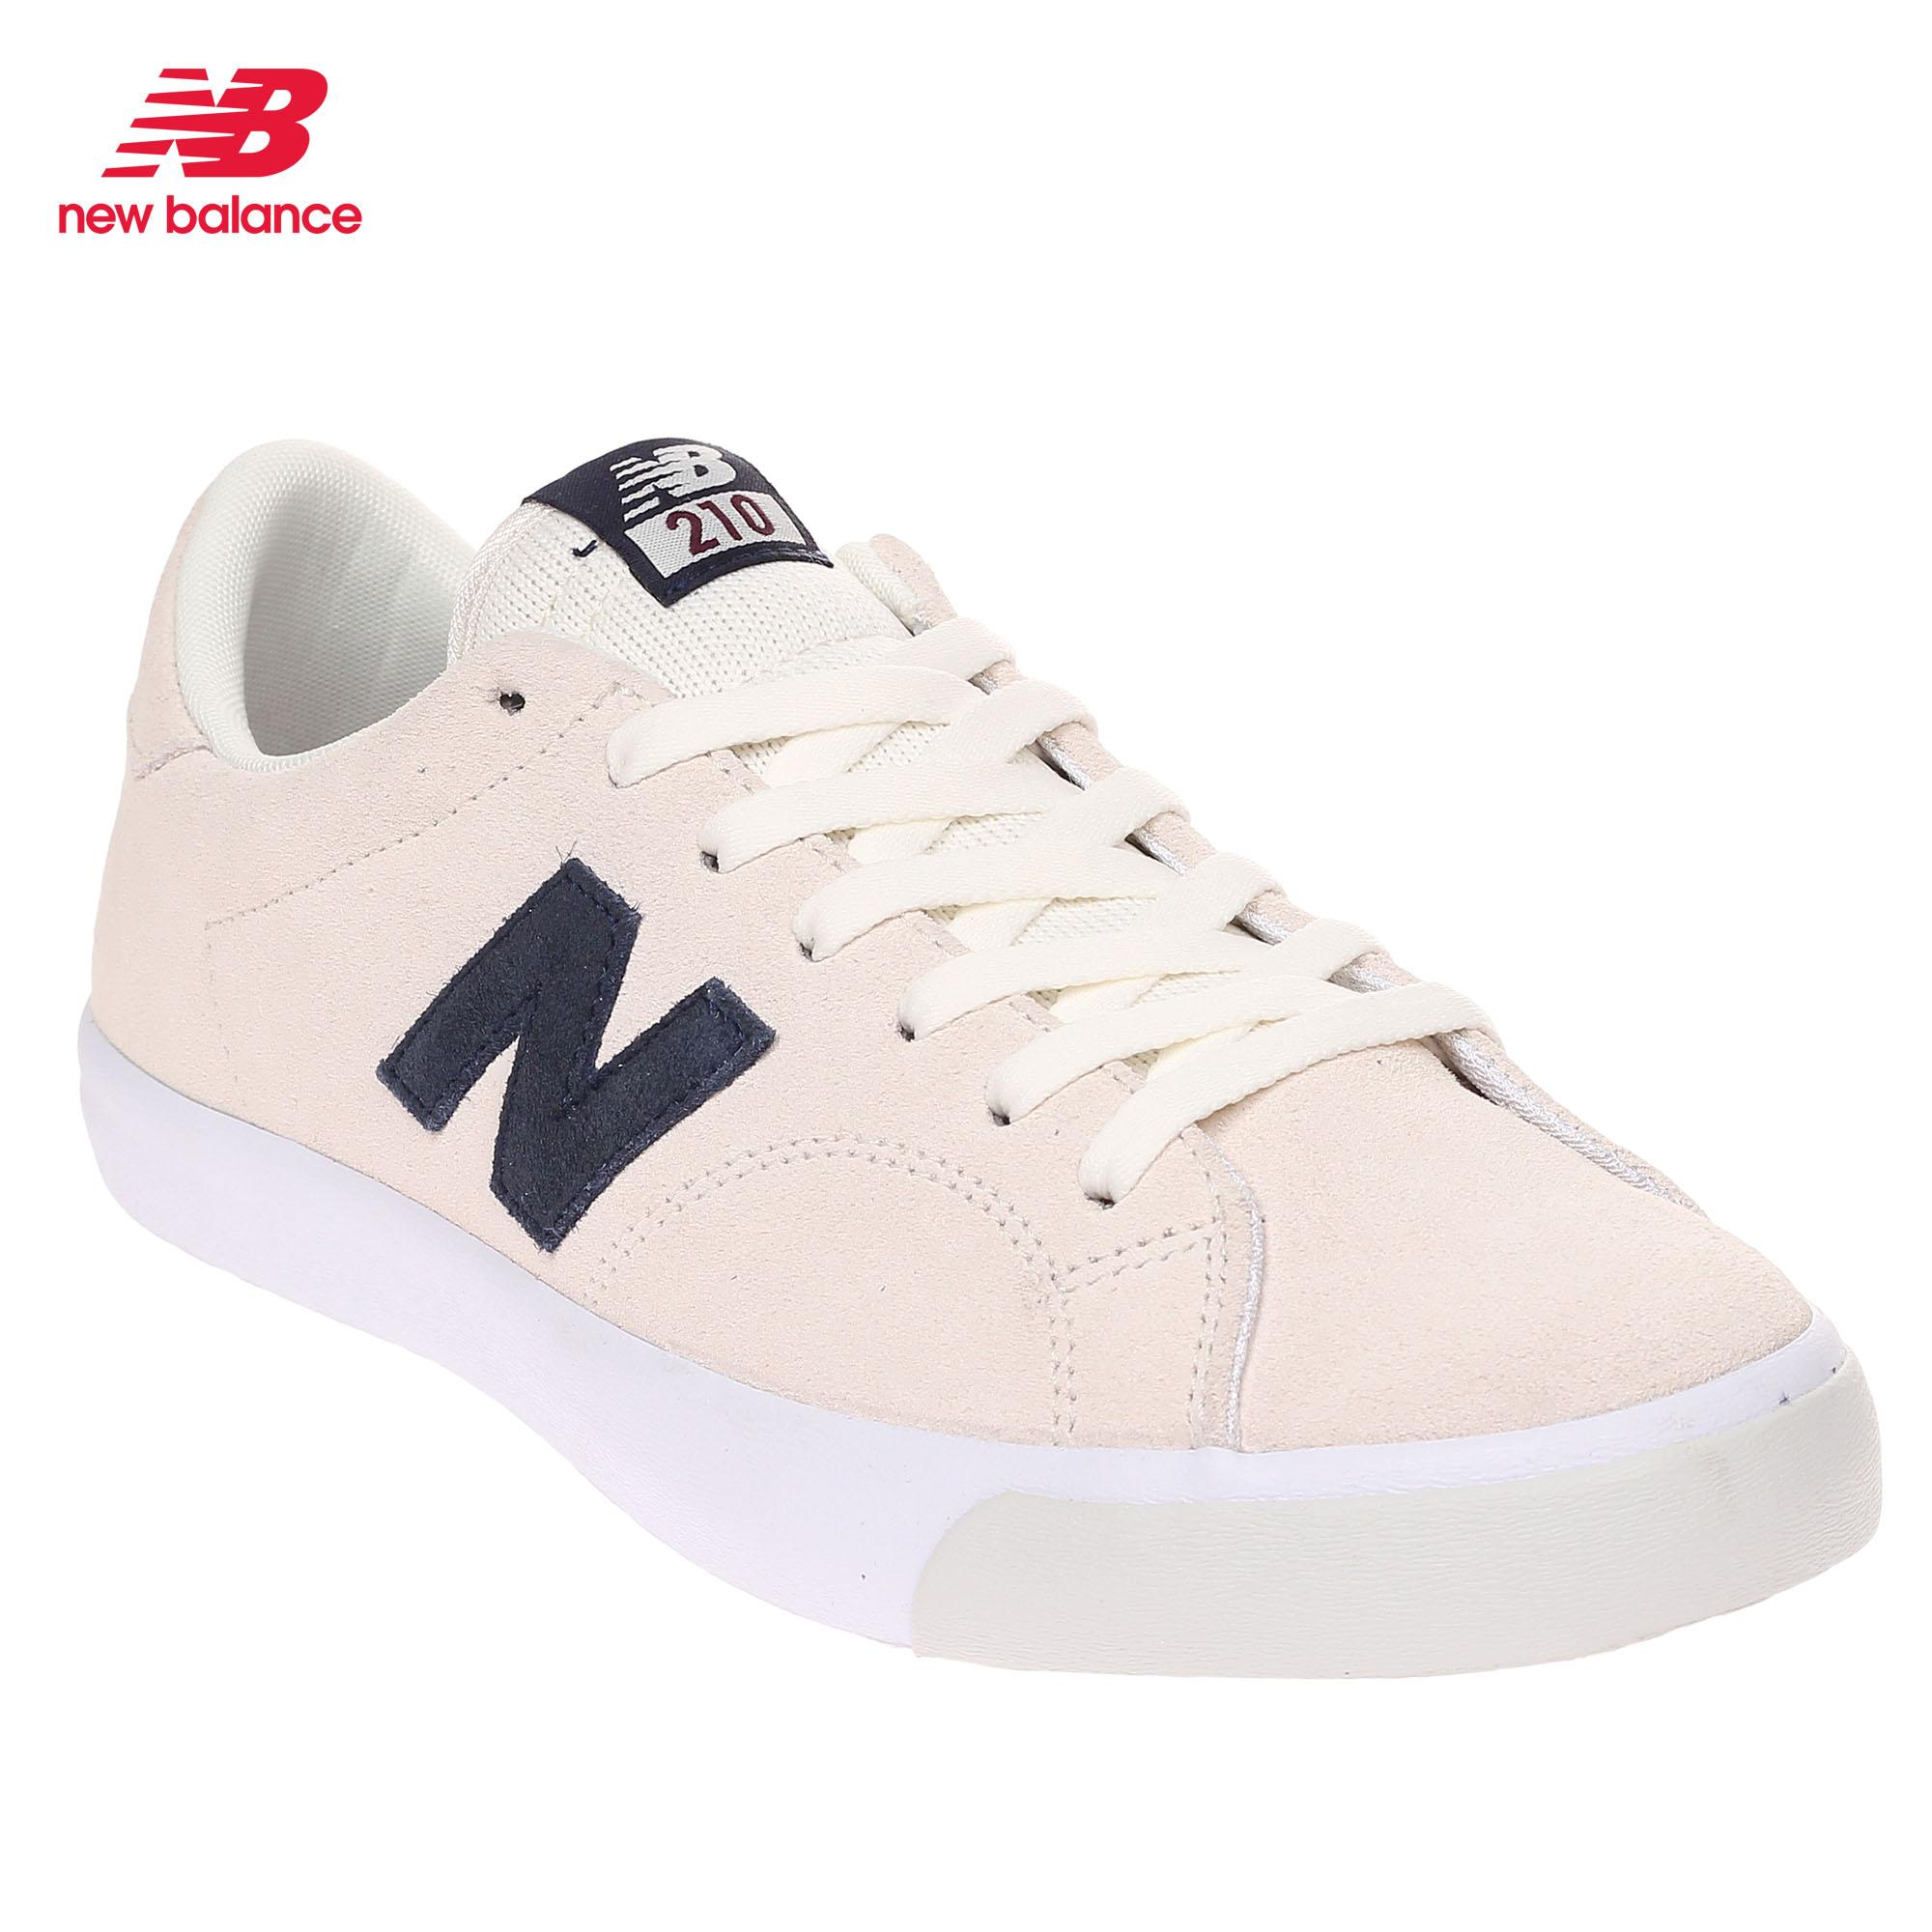 All Coast Lifestyle Casual Rubber Shoes